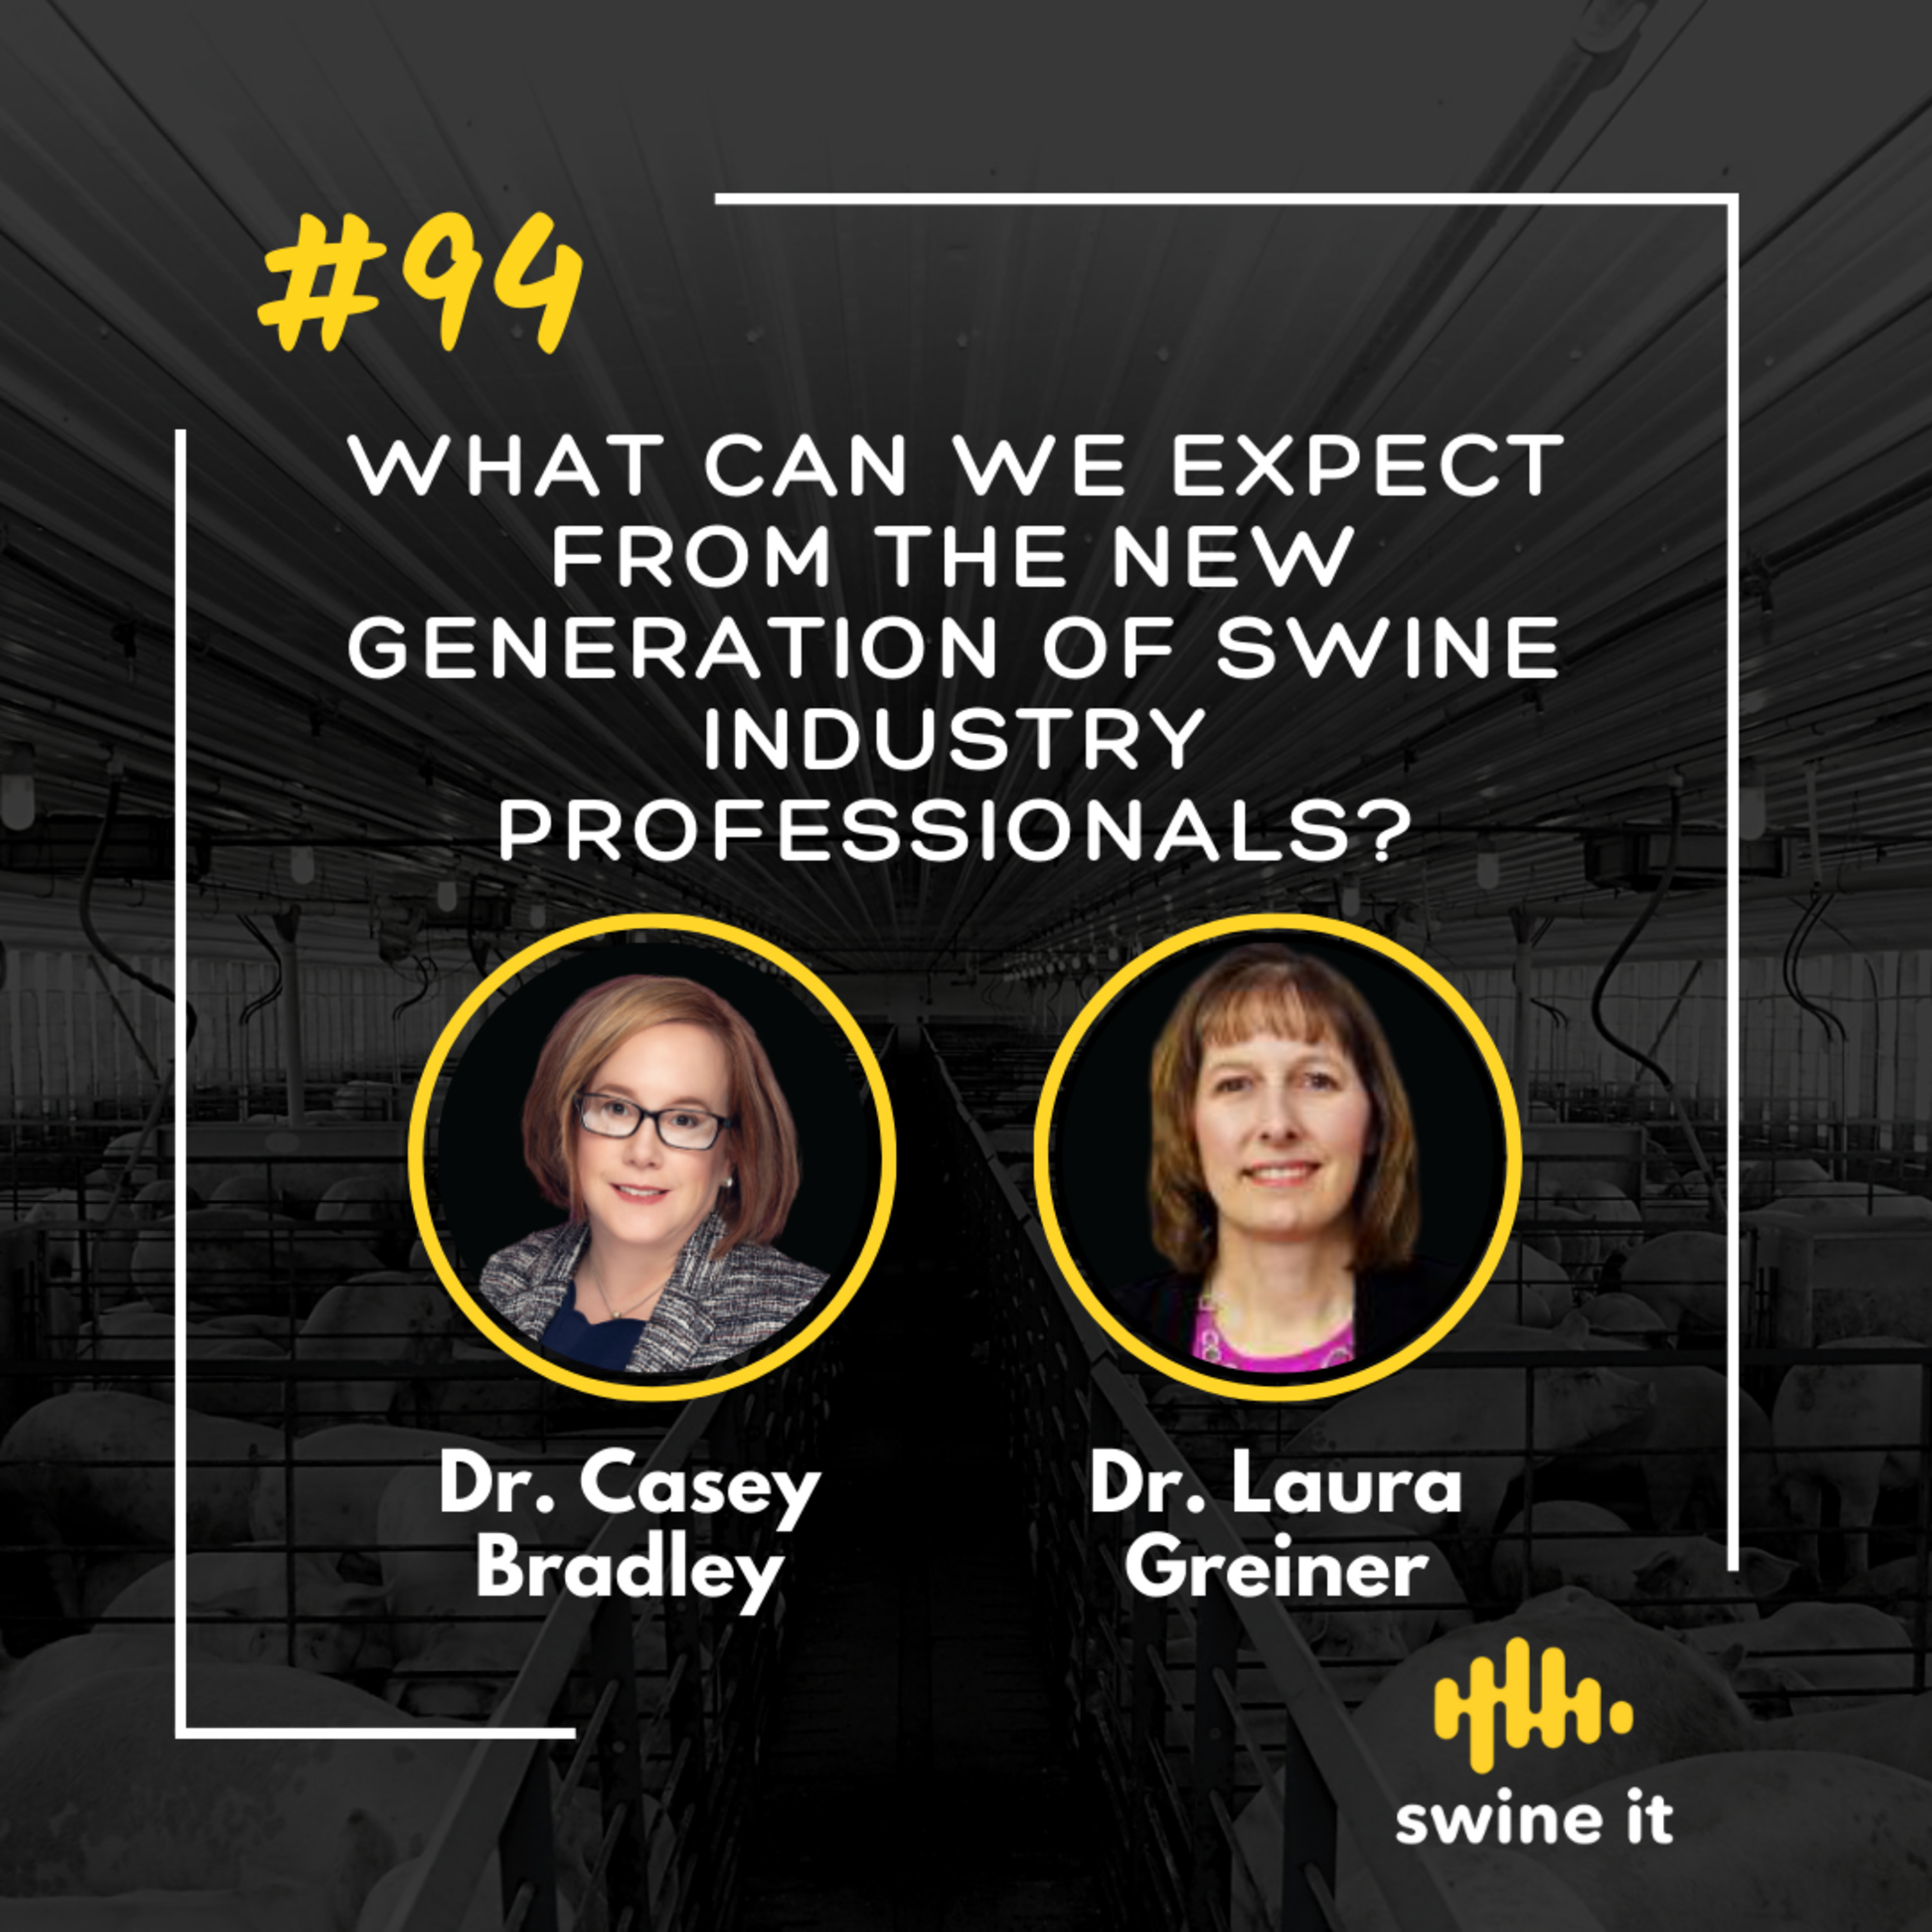 What can we expect from the new generation of swine industry professionals? - Dr. Casey Bradley